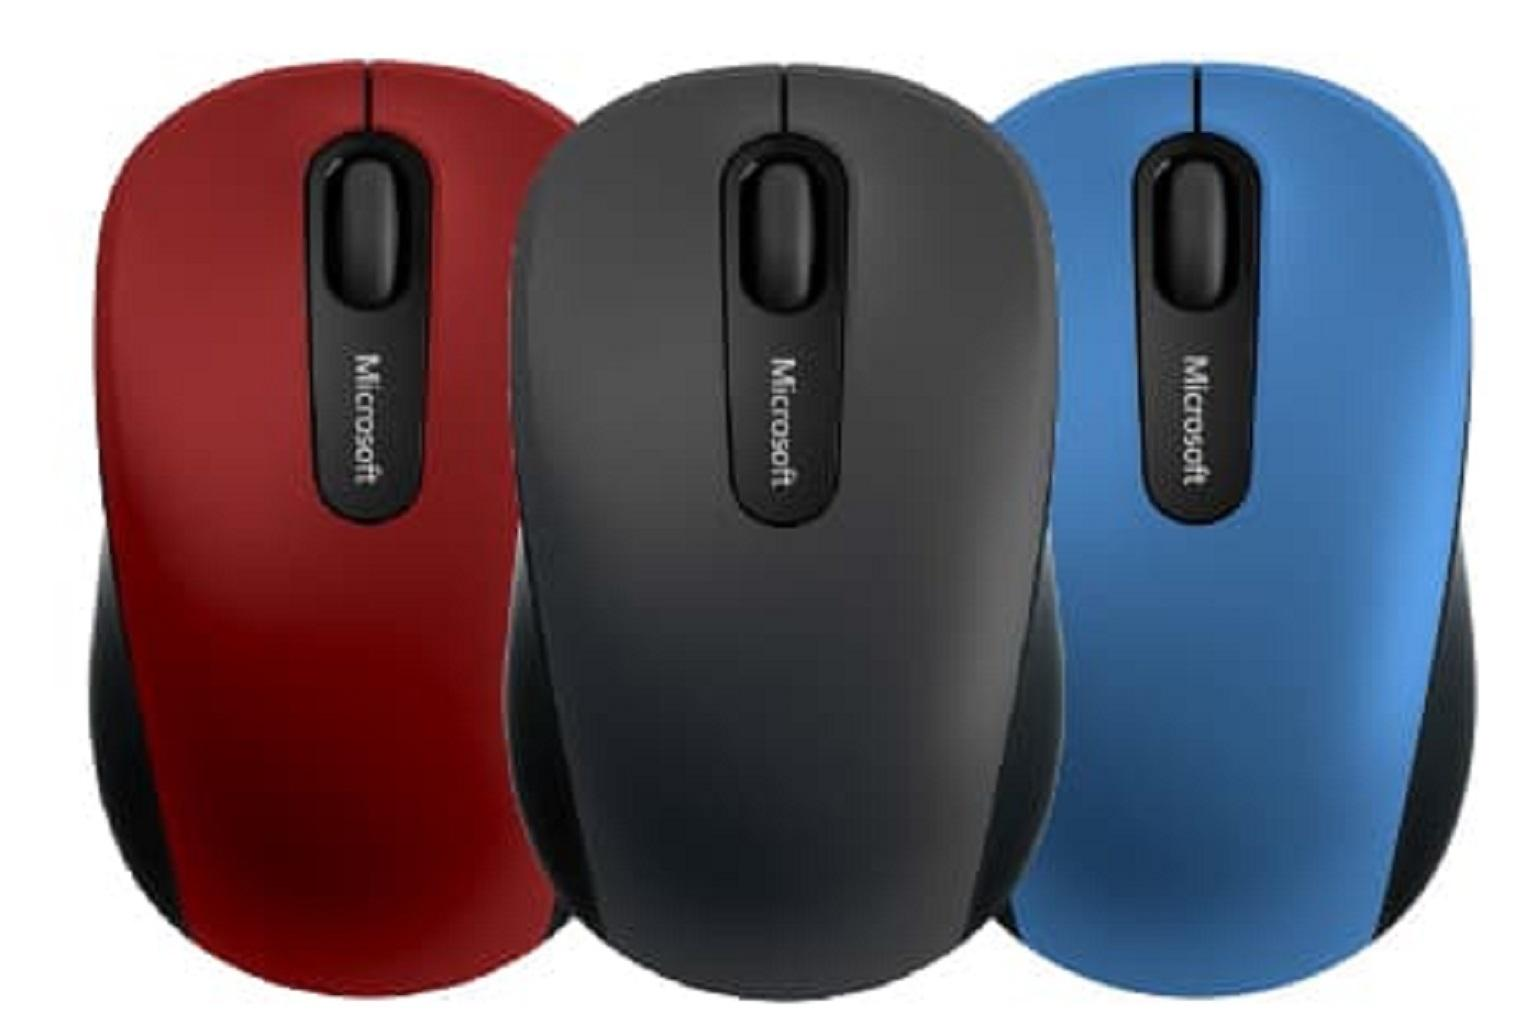 Buy Sell Cheapest Microsoft Bluetooth Mobile Best Quality Product 3600 Mouse Seller Biru